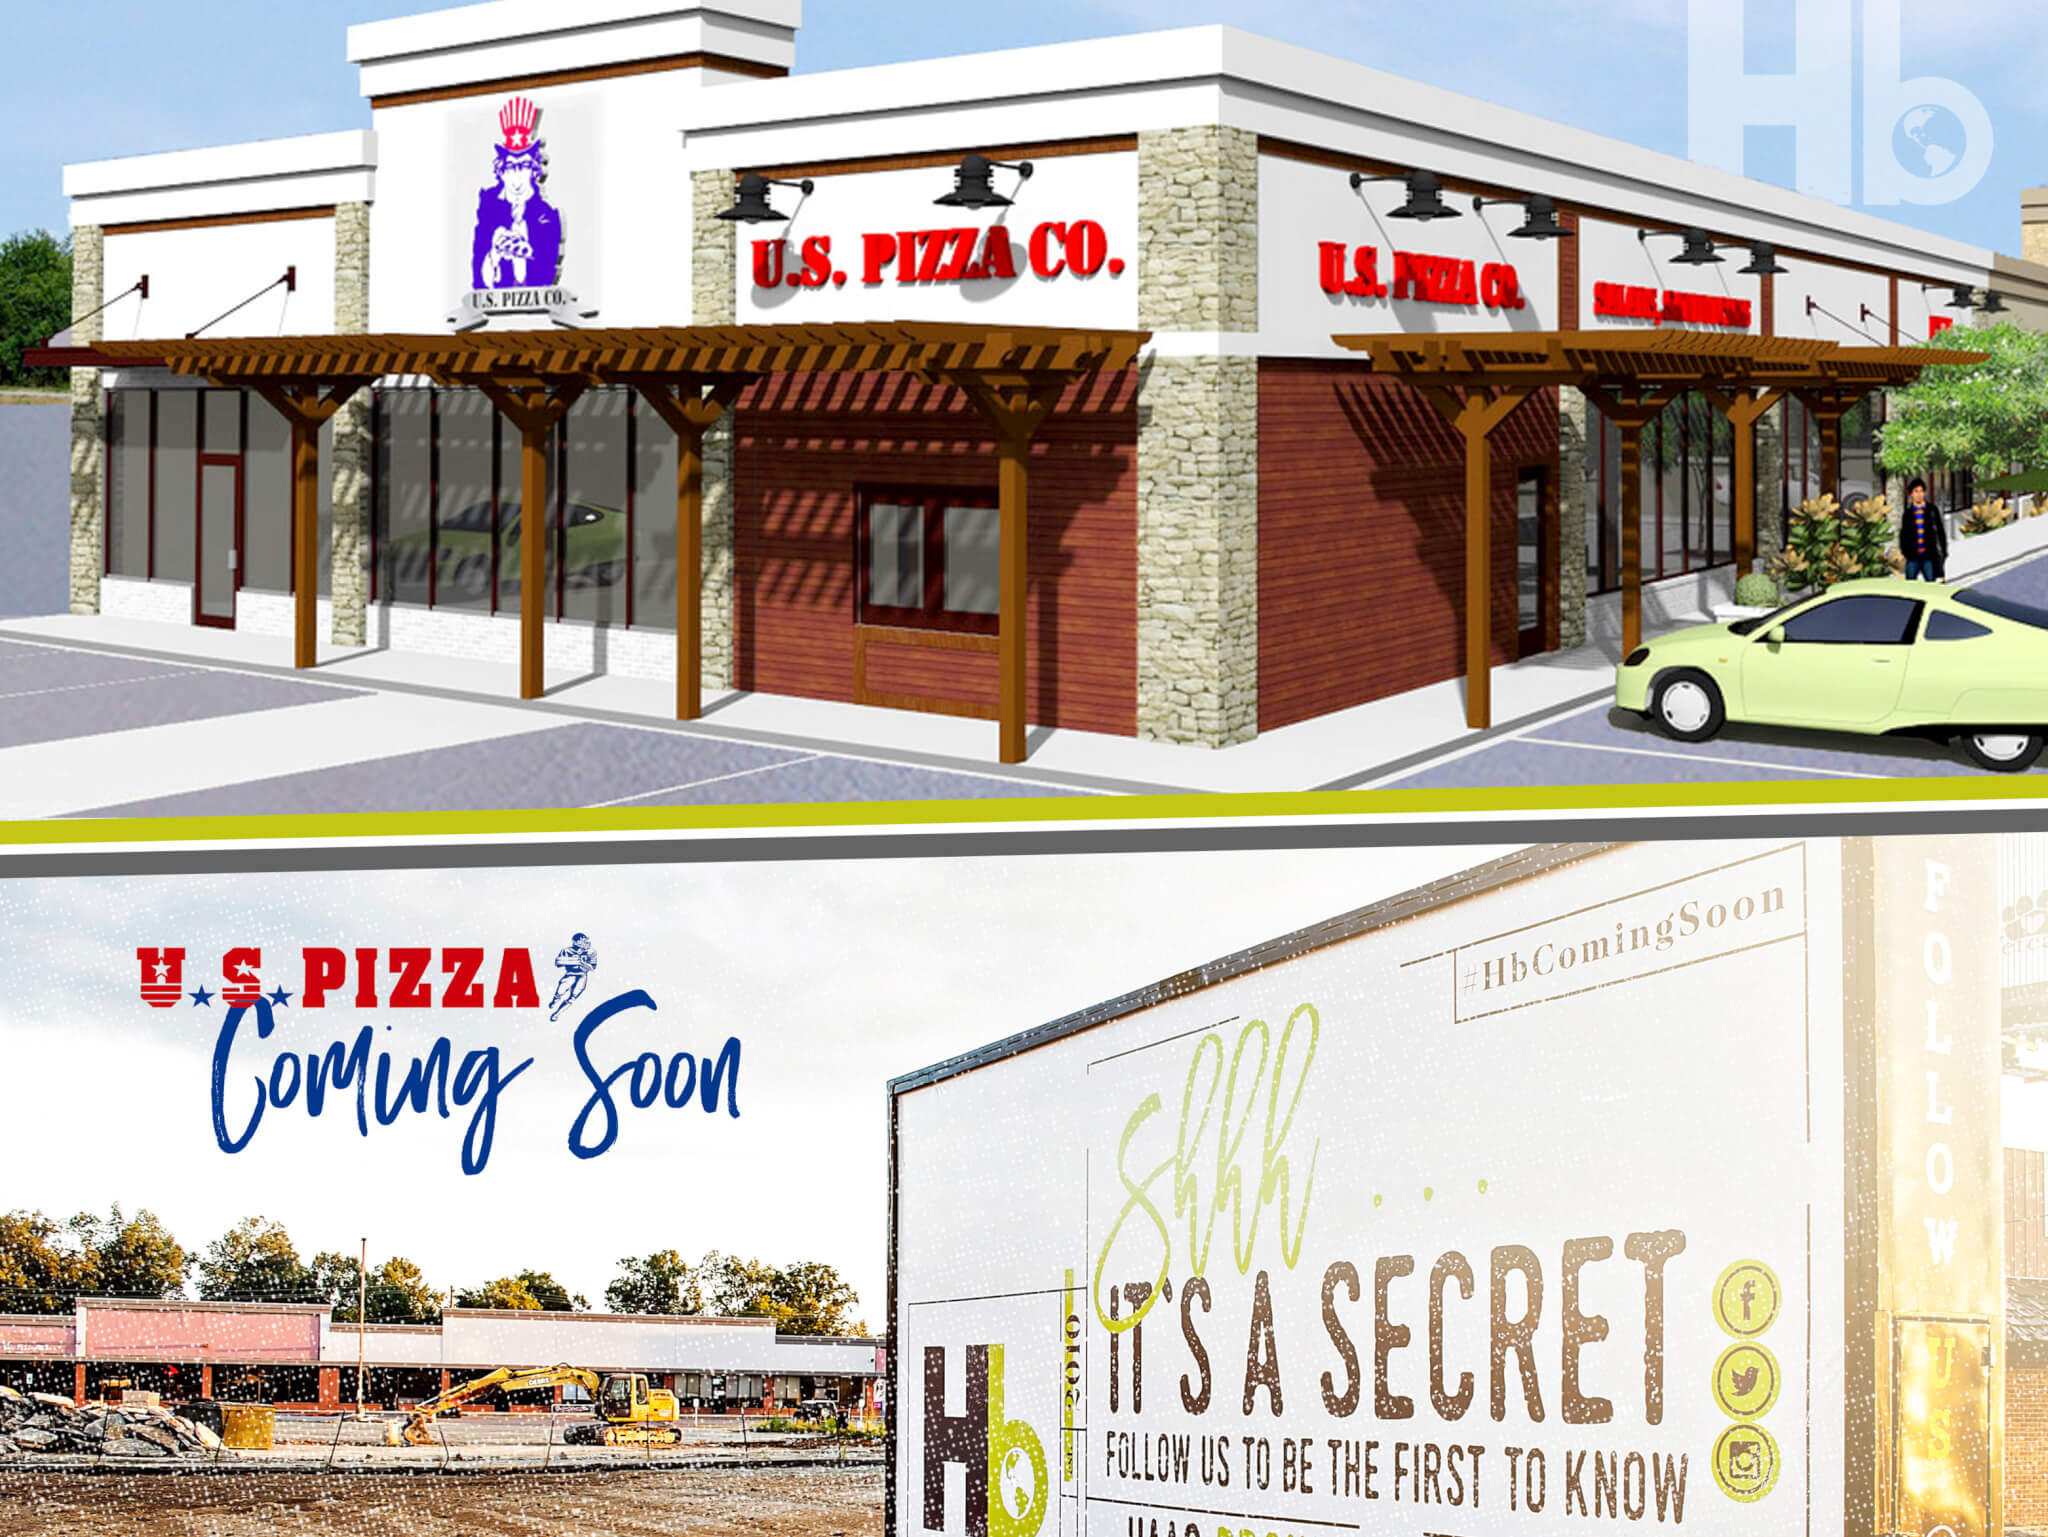 Haag Brown Announces U.S. Pizza Joins Highland Shopping Center